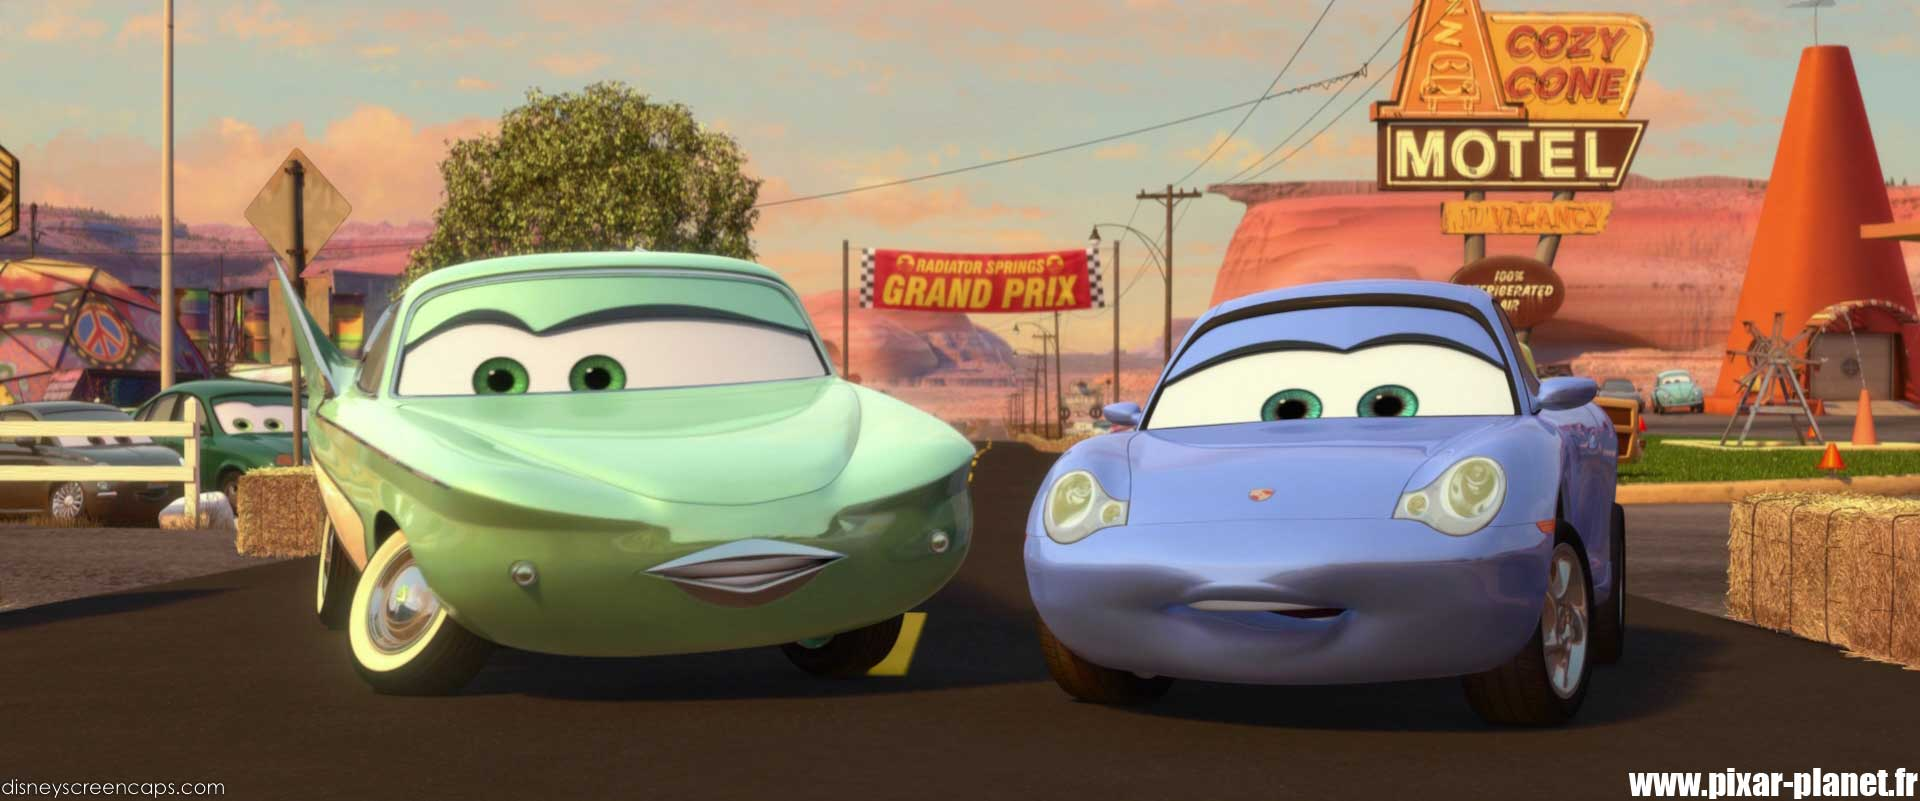 Pixar Planet Disney cars 2